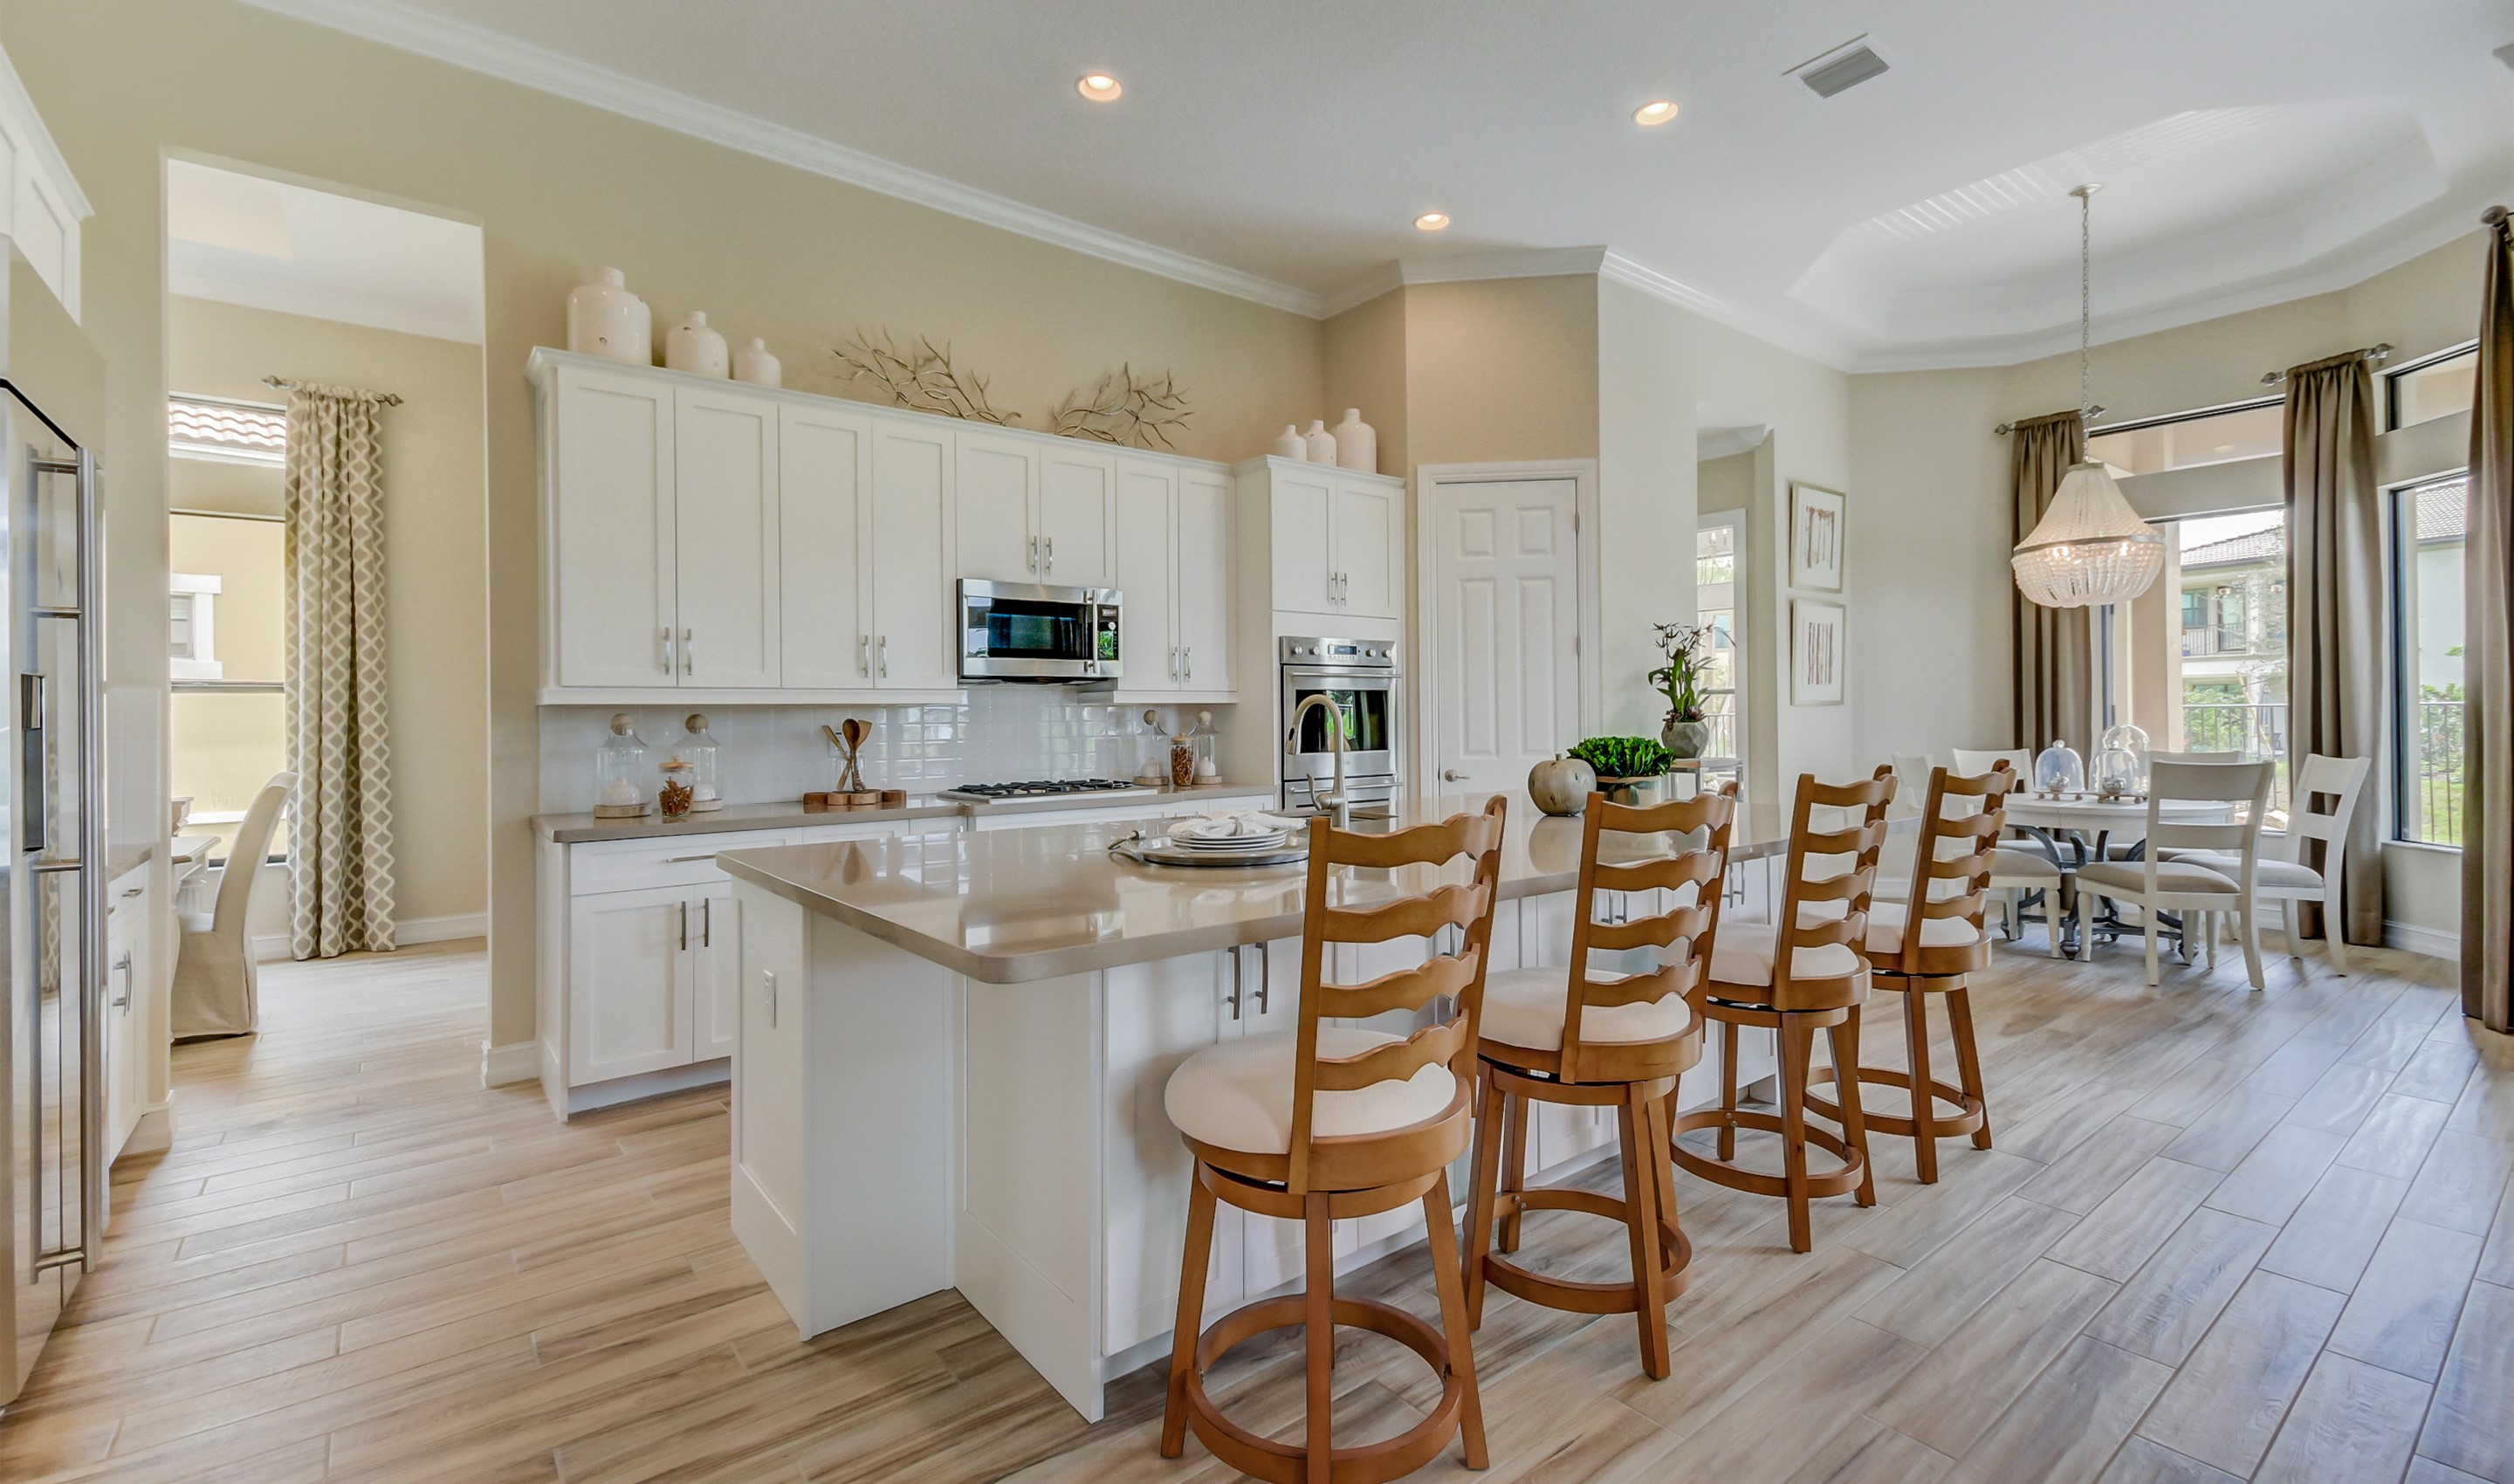 Kitchen with cozy dining area